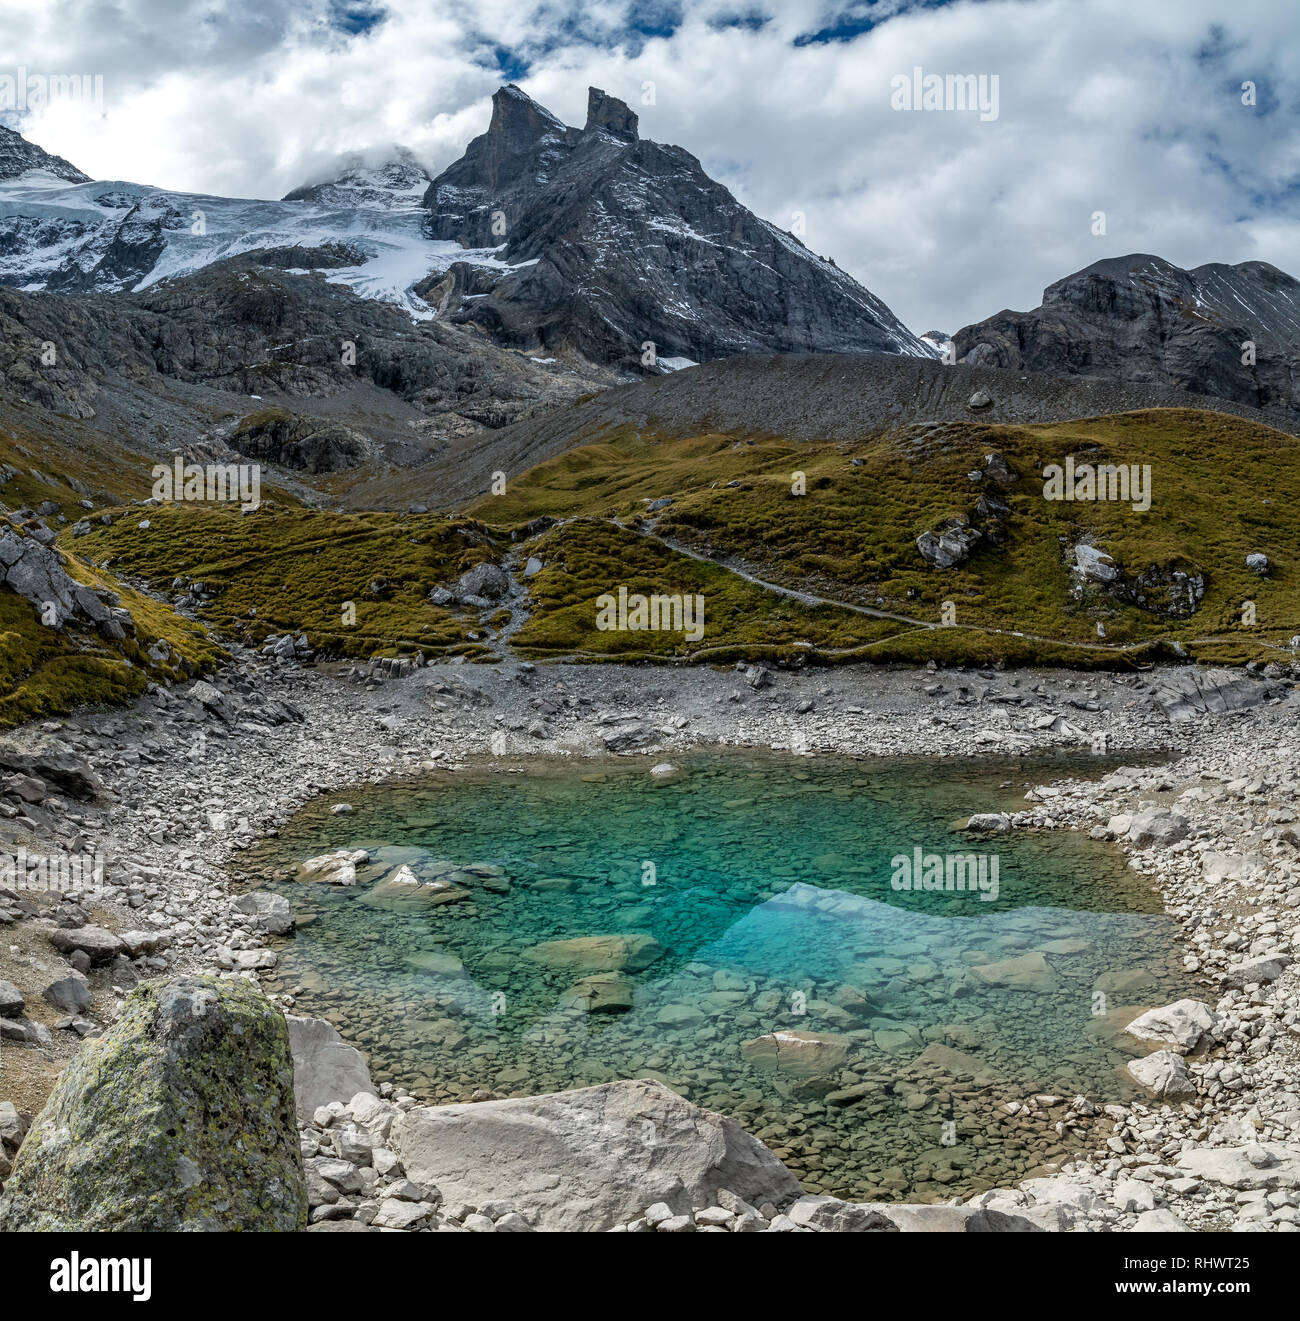 Oberhornsee is a remote mountain lake in the remote and wild end of Lauterbrunnen Valley - Stock Image